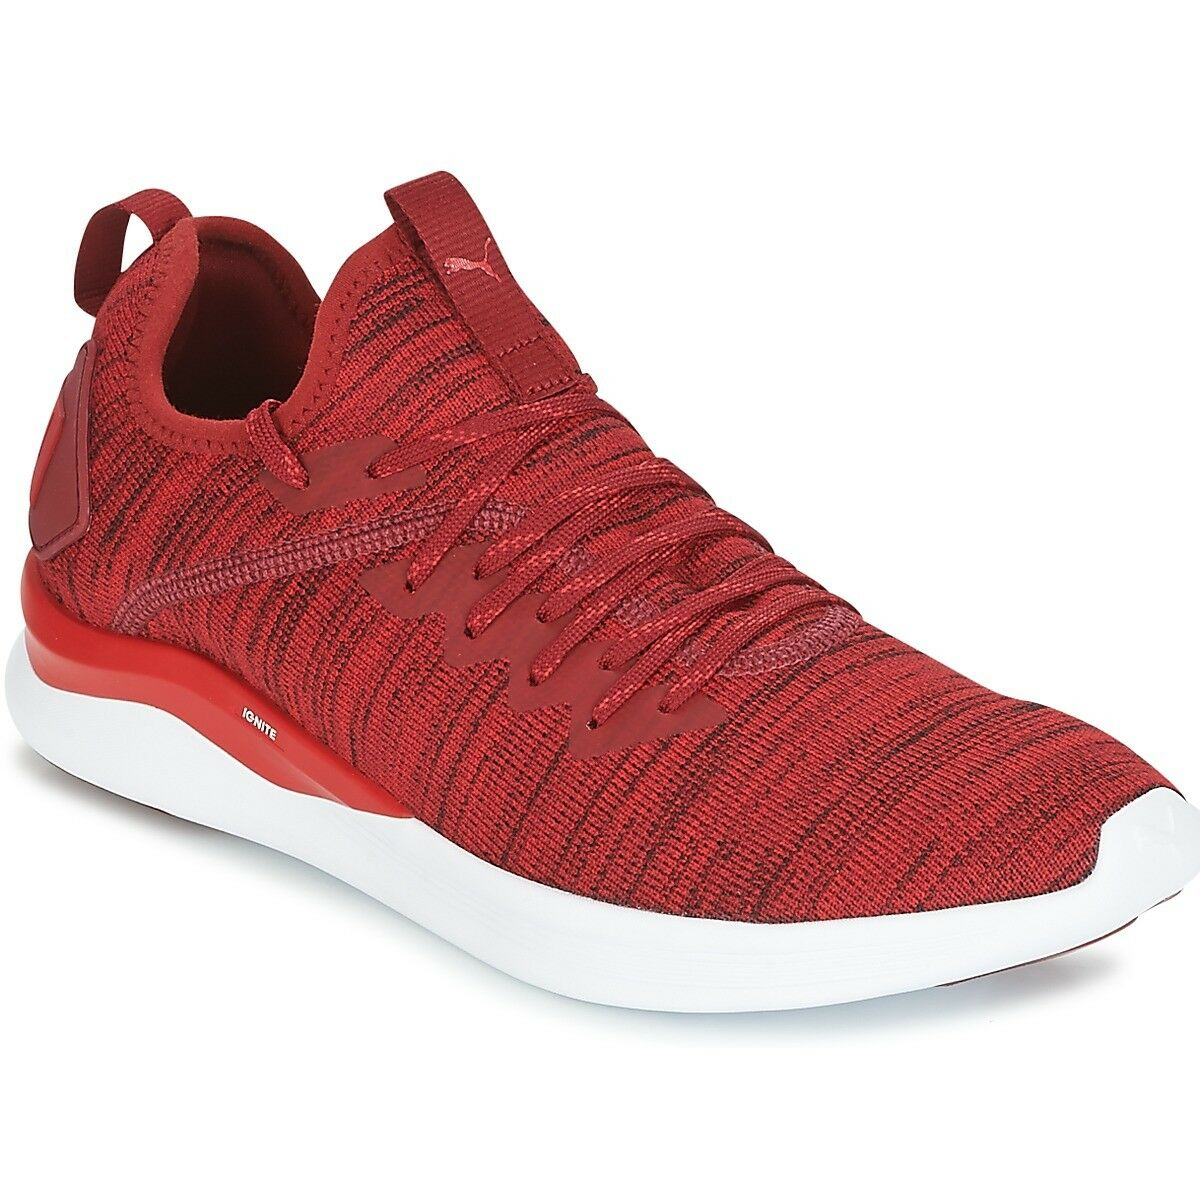 MENS PUMA MEN'S IGNITE FLASH EVOKNIT RED DAHLIA CASUAL SHOES MEN'S PUMA SELECT YOUR SIZE 61b1cc